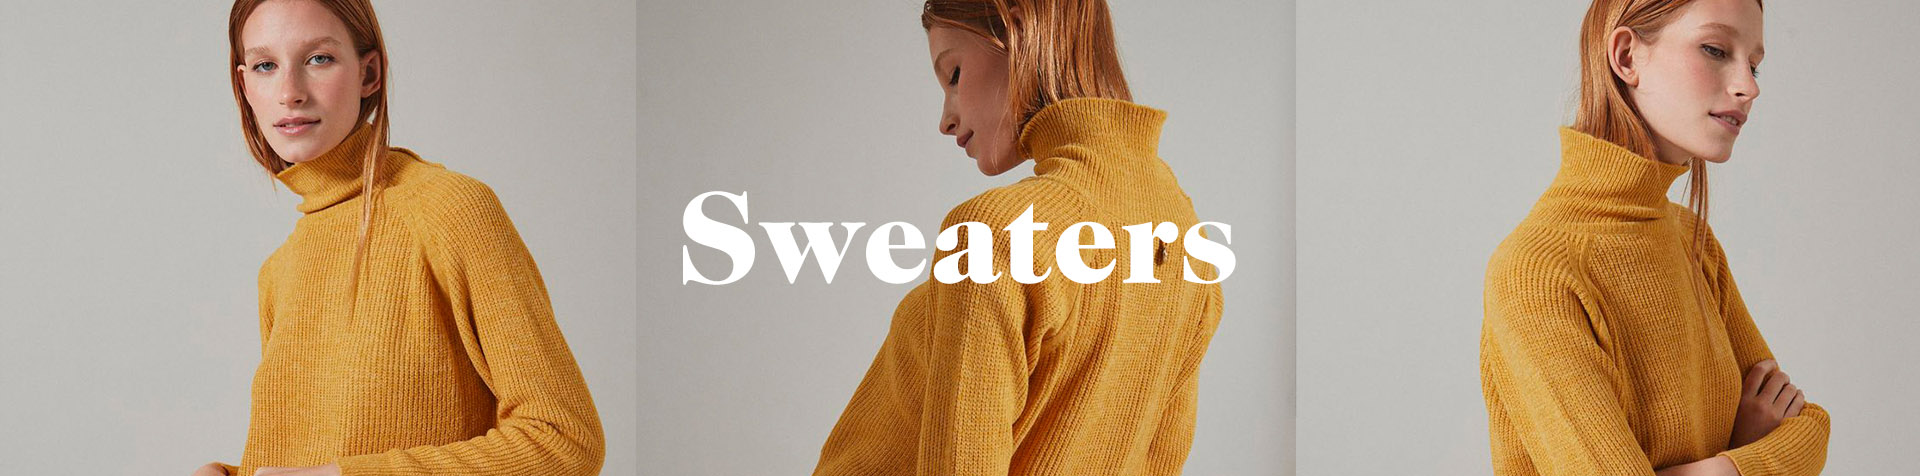 Sweaters-t71